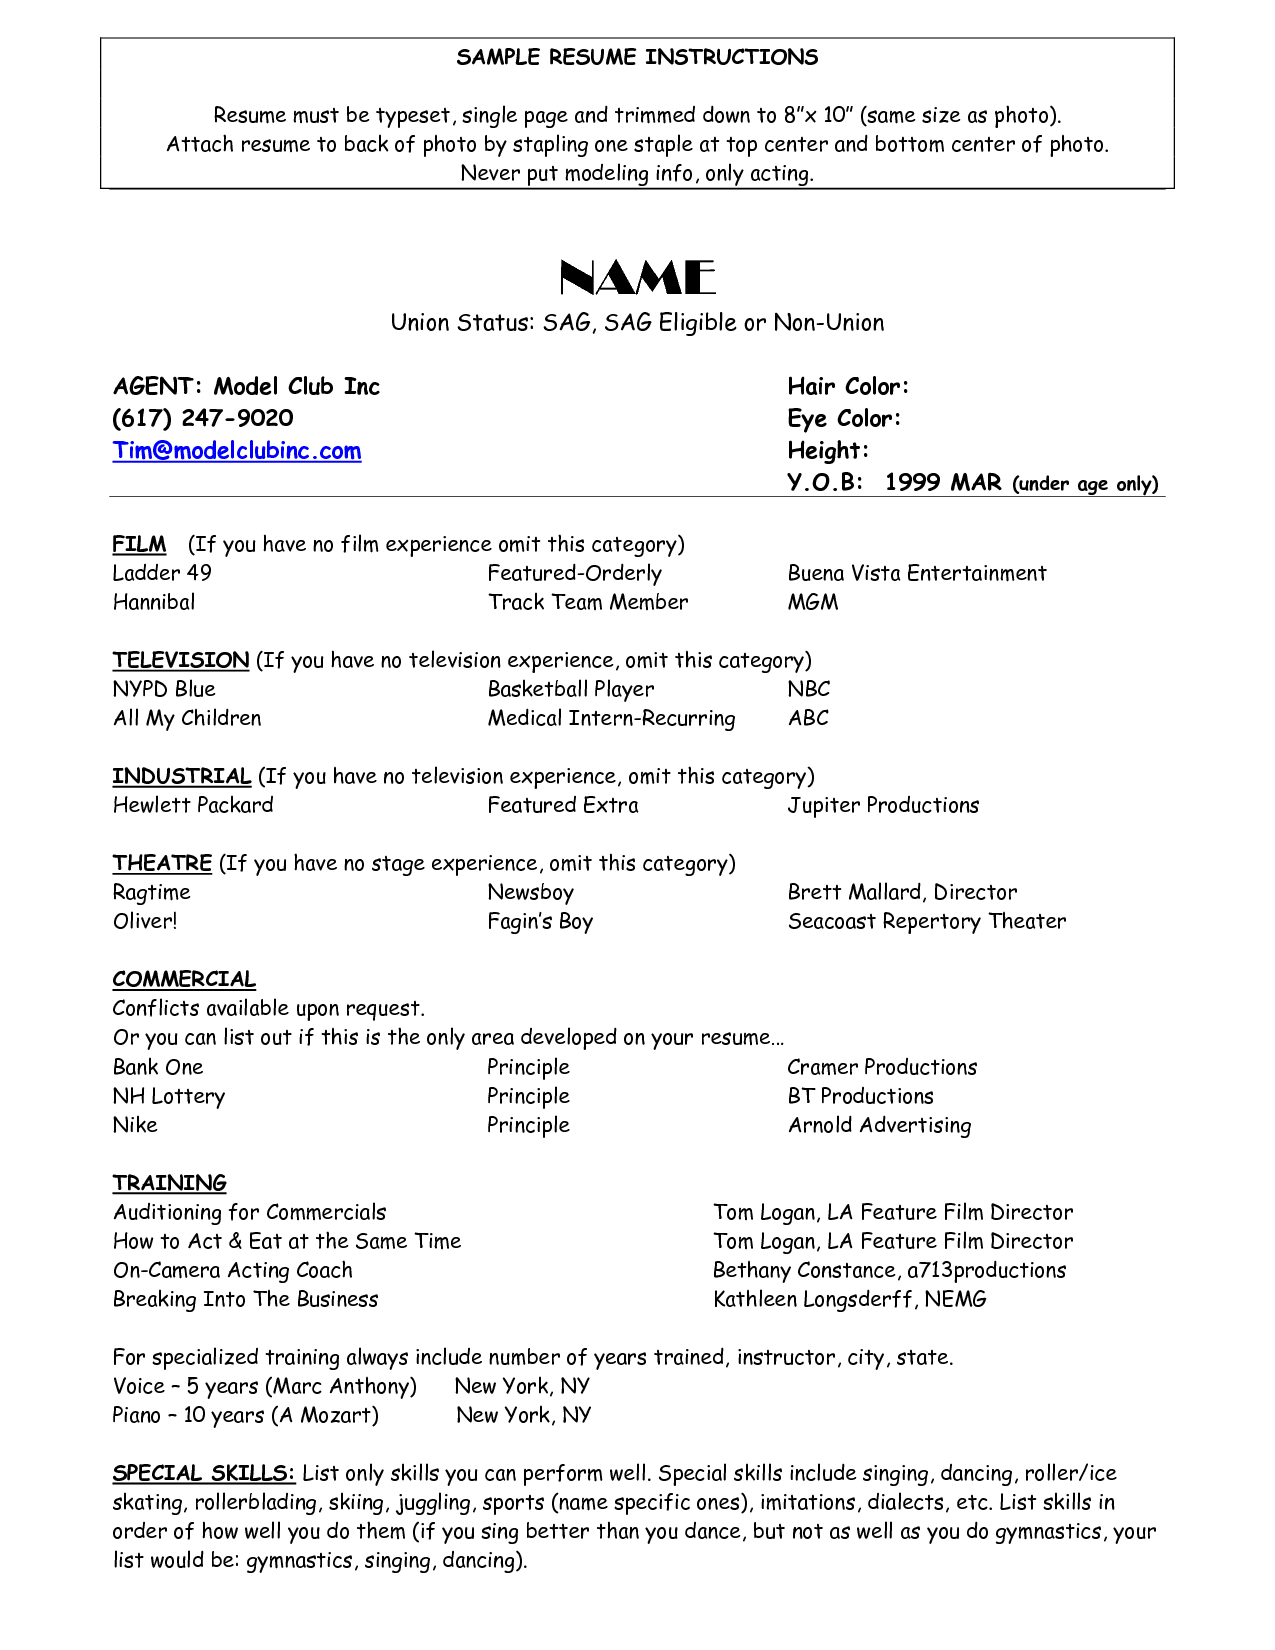 acting resume special skills list